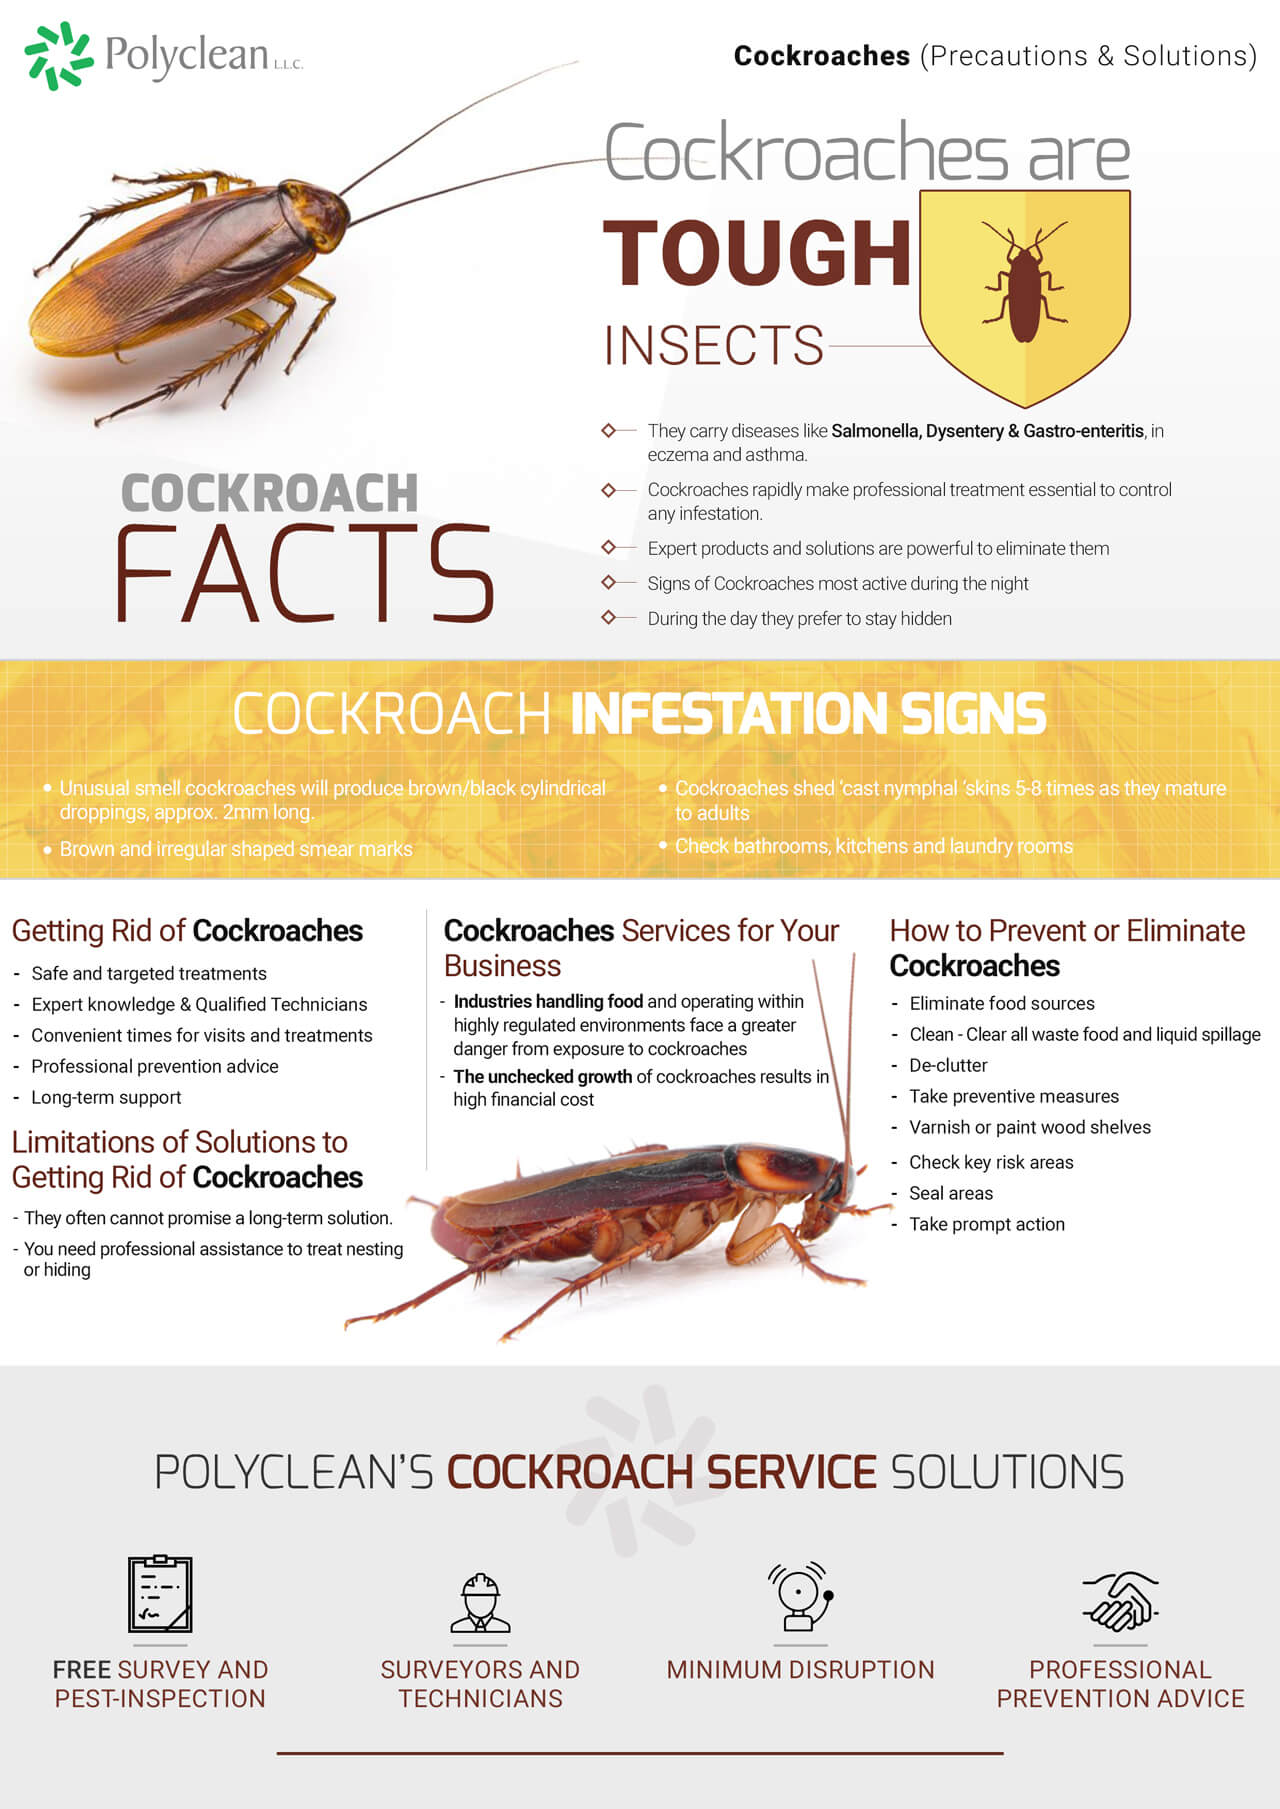 crawling-insects-cockroaches-2